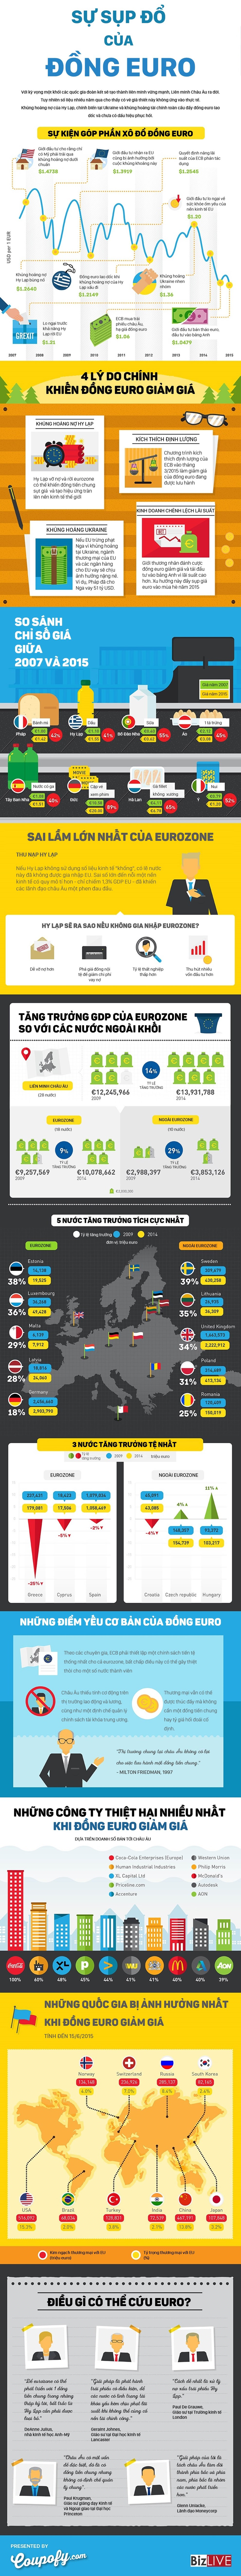 Infographic_Sup_Do_Dong_Euro